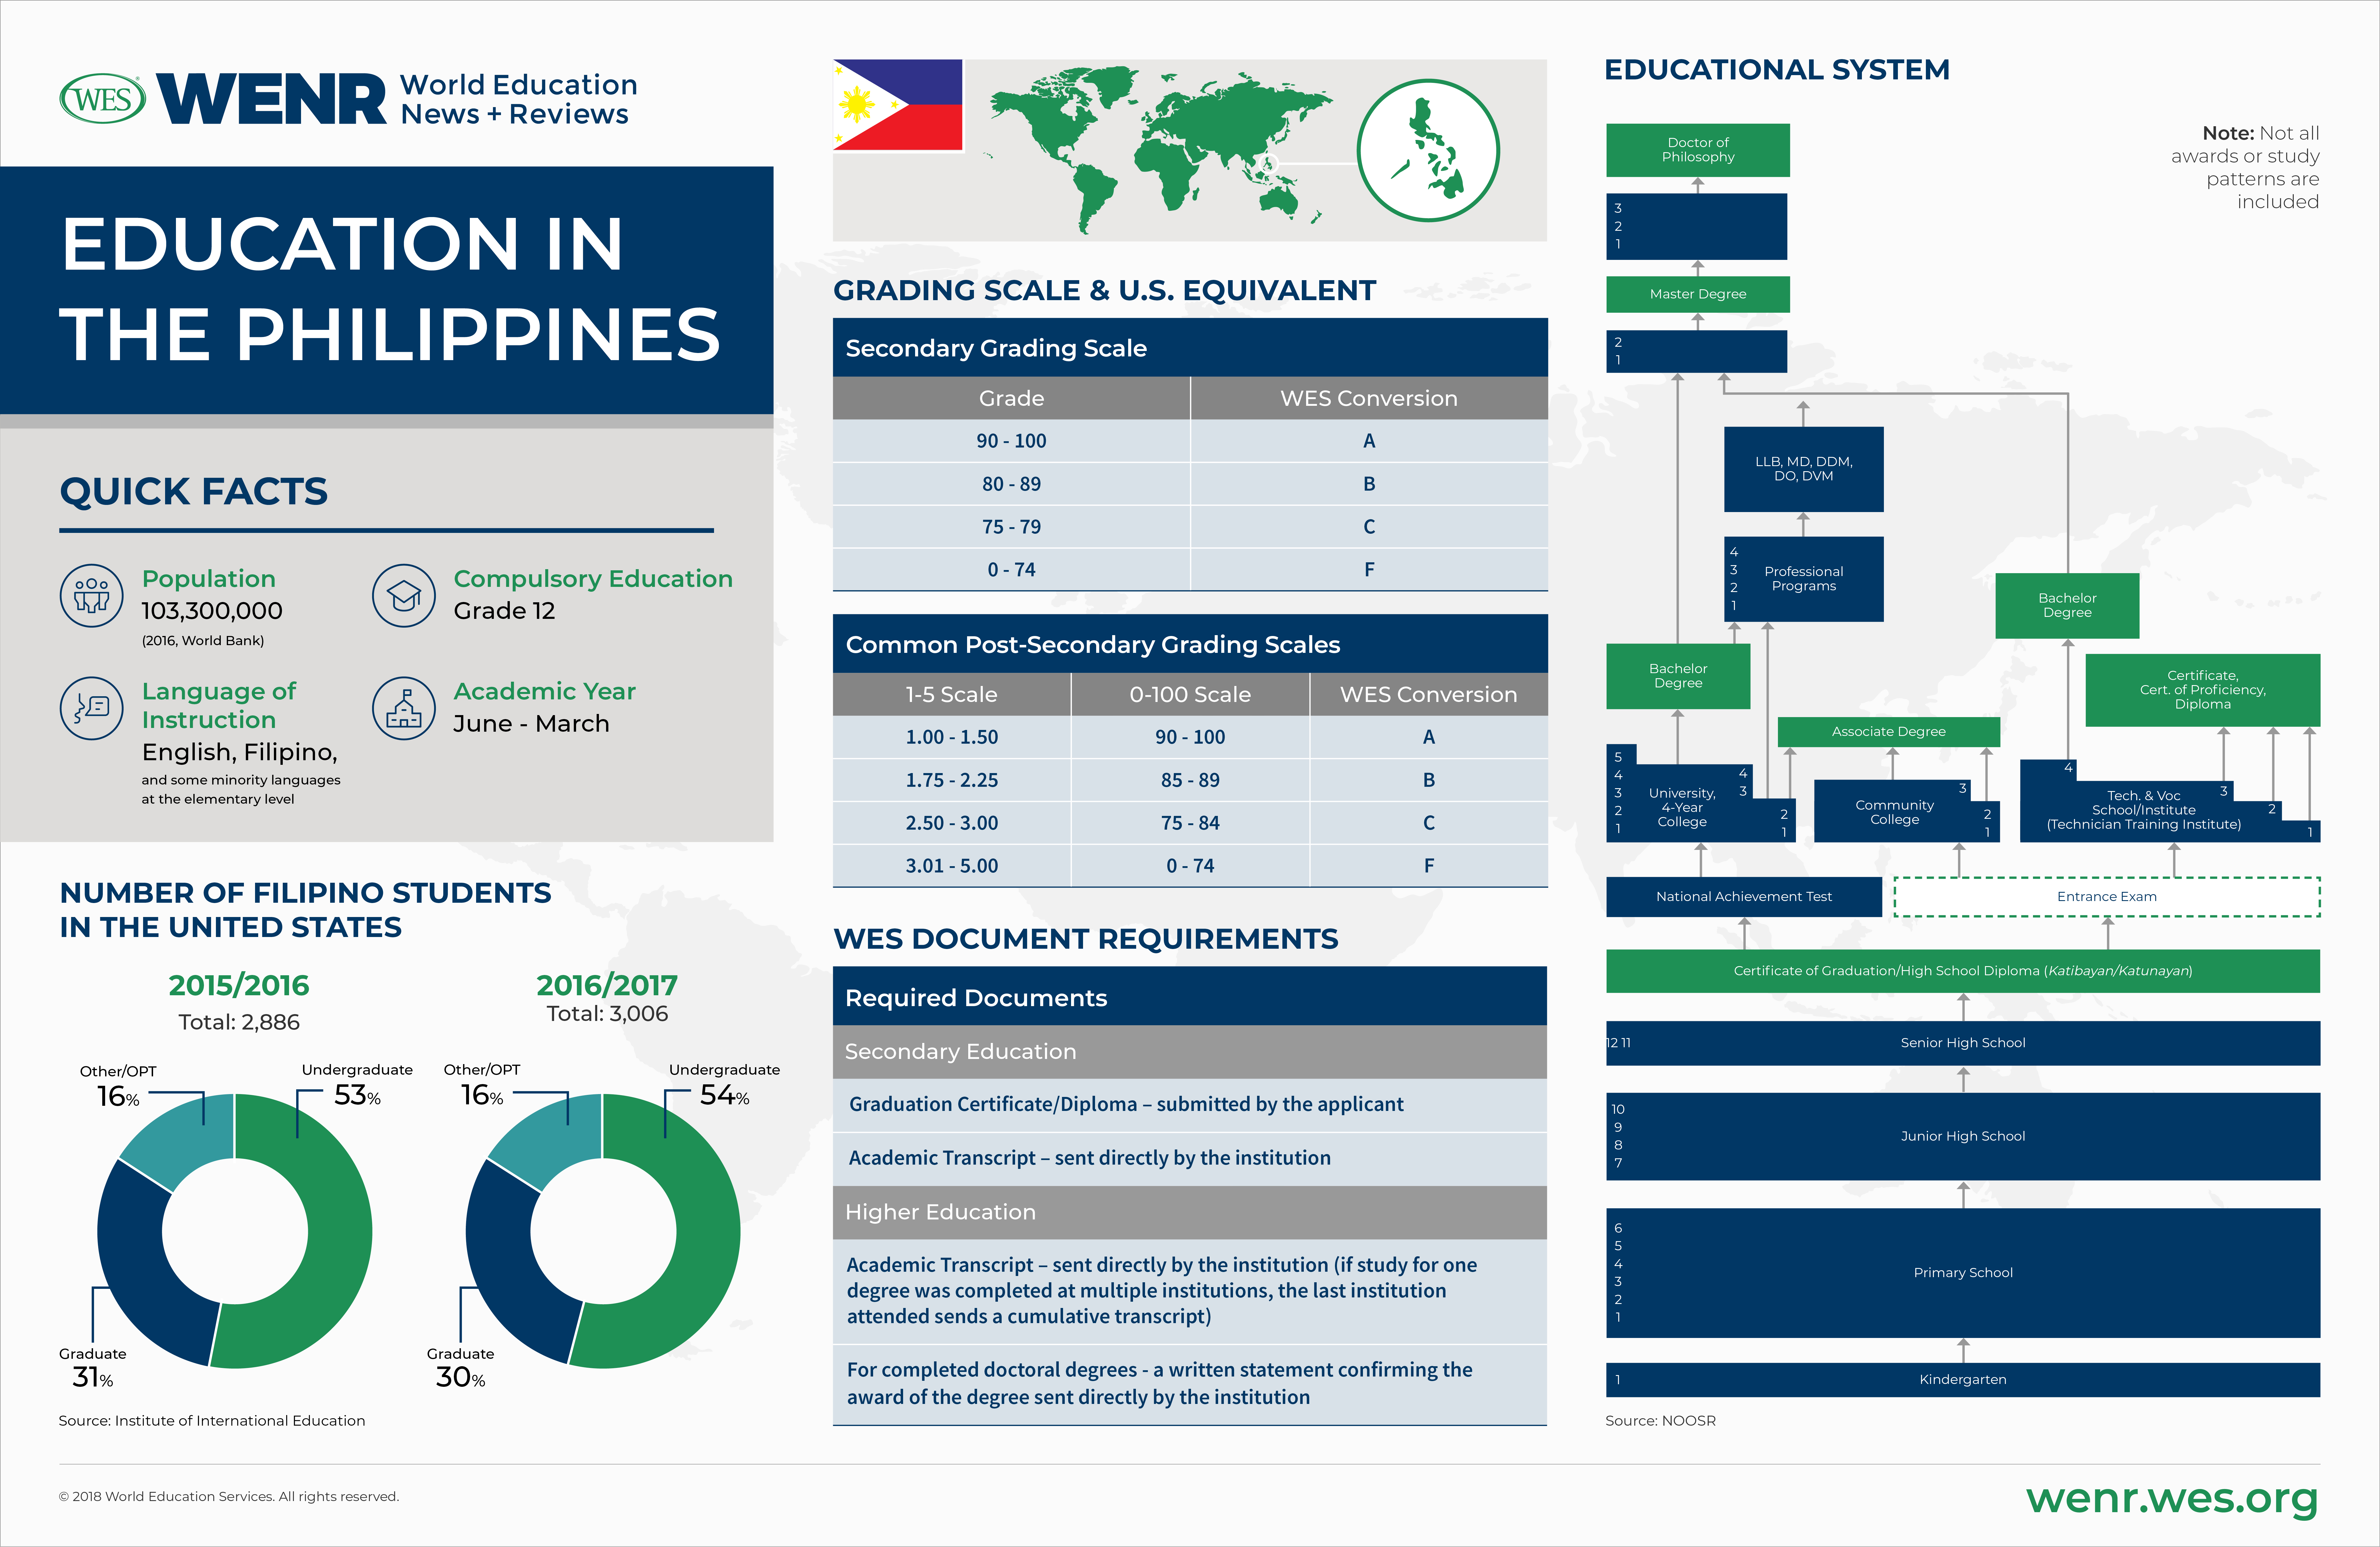 Education in the Philippines Infographic: Fast facts on the Philippine's educational system and international student mobility